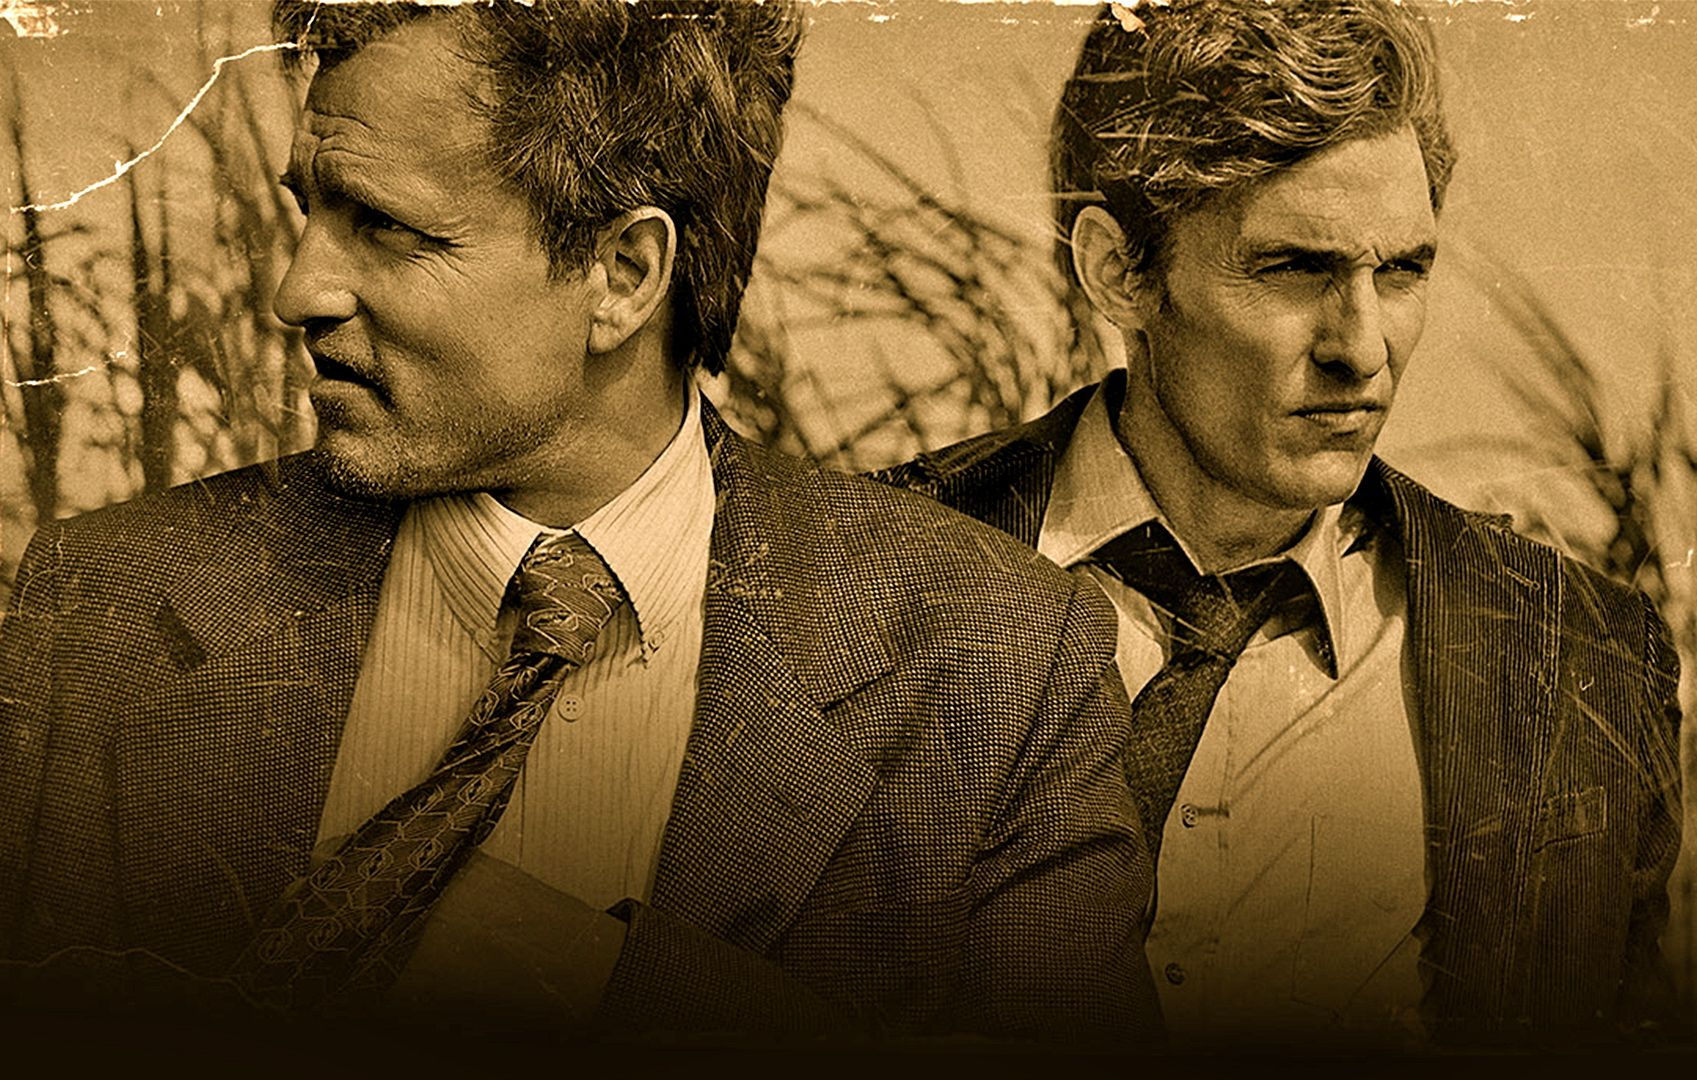 Det. Marty Hart and Det. Rust Cohle